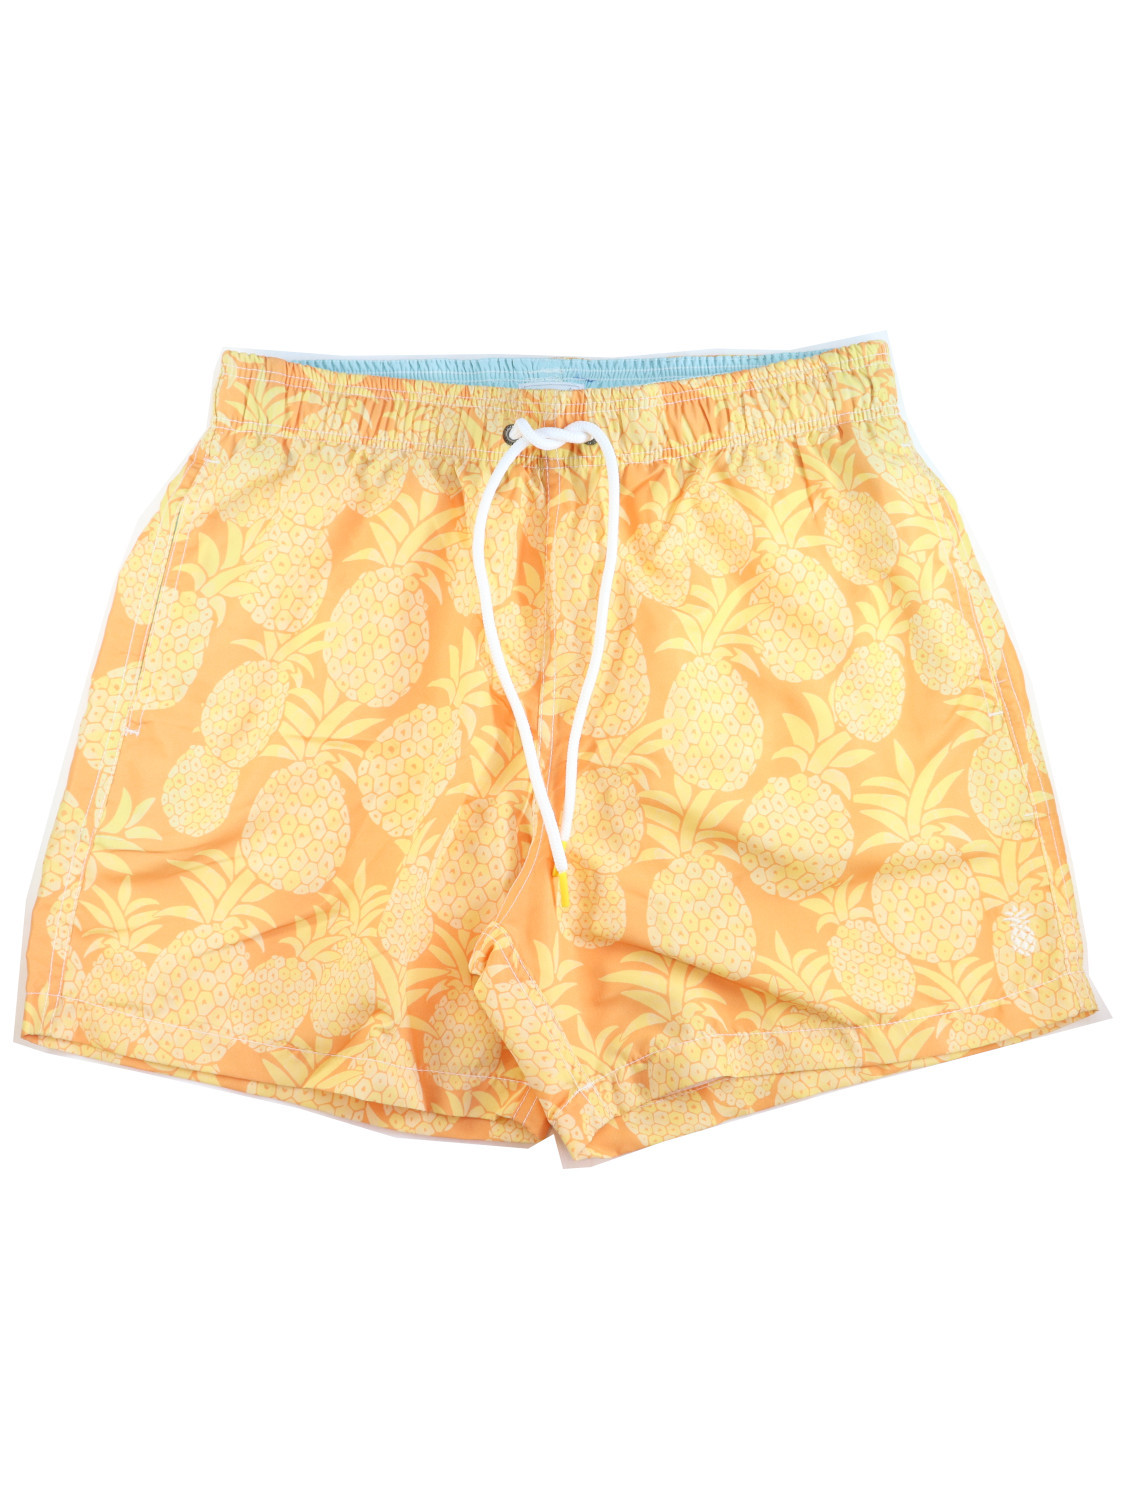 SHORTS PRAIA PINEAPPLE